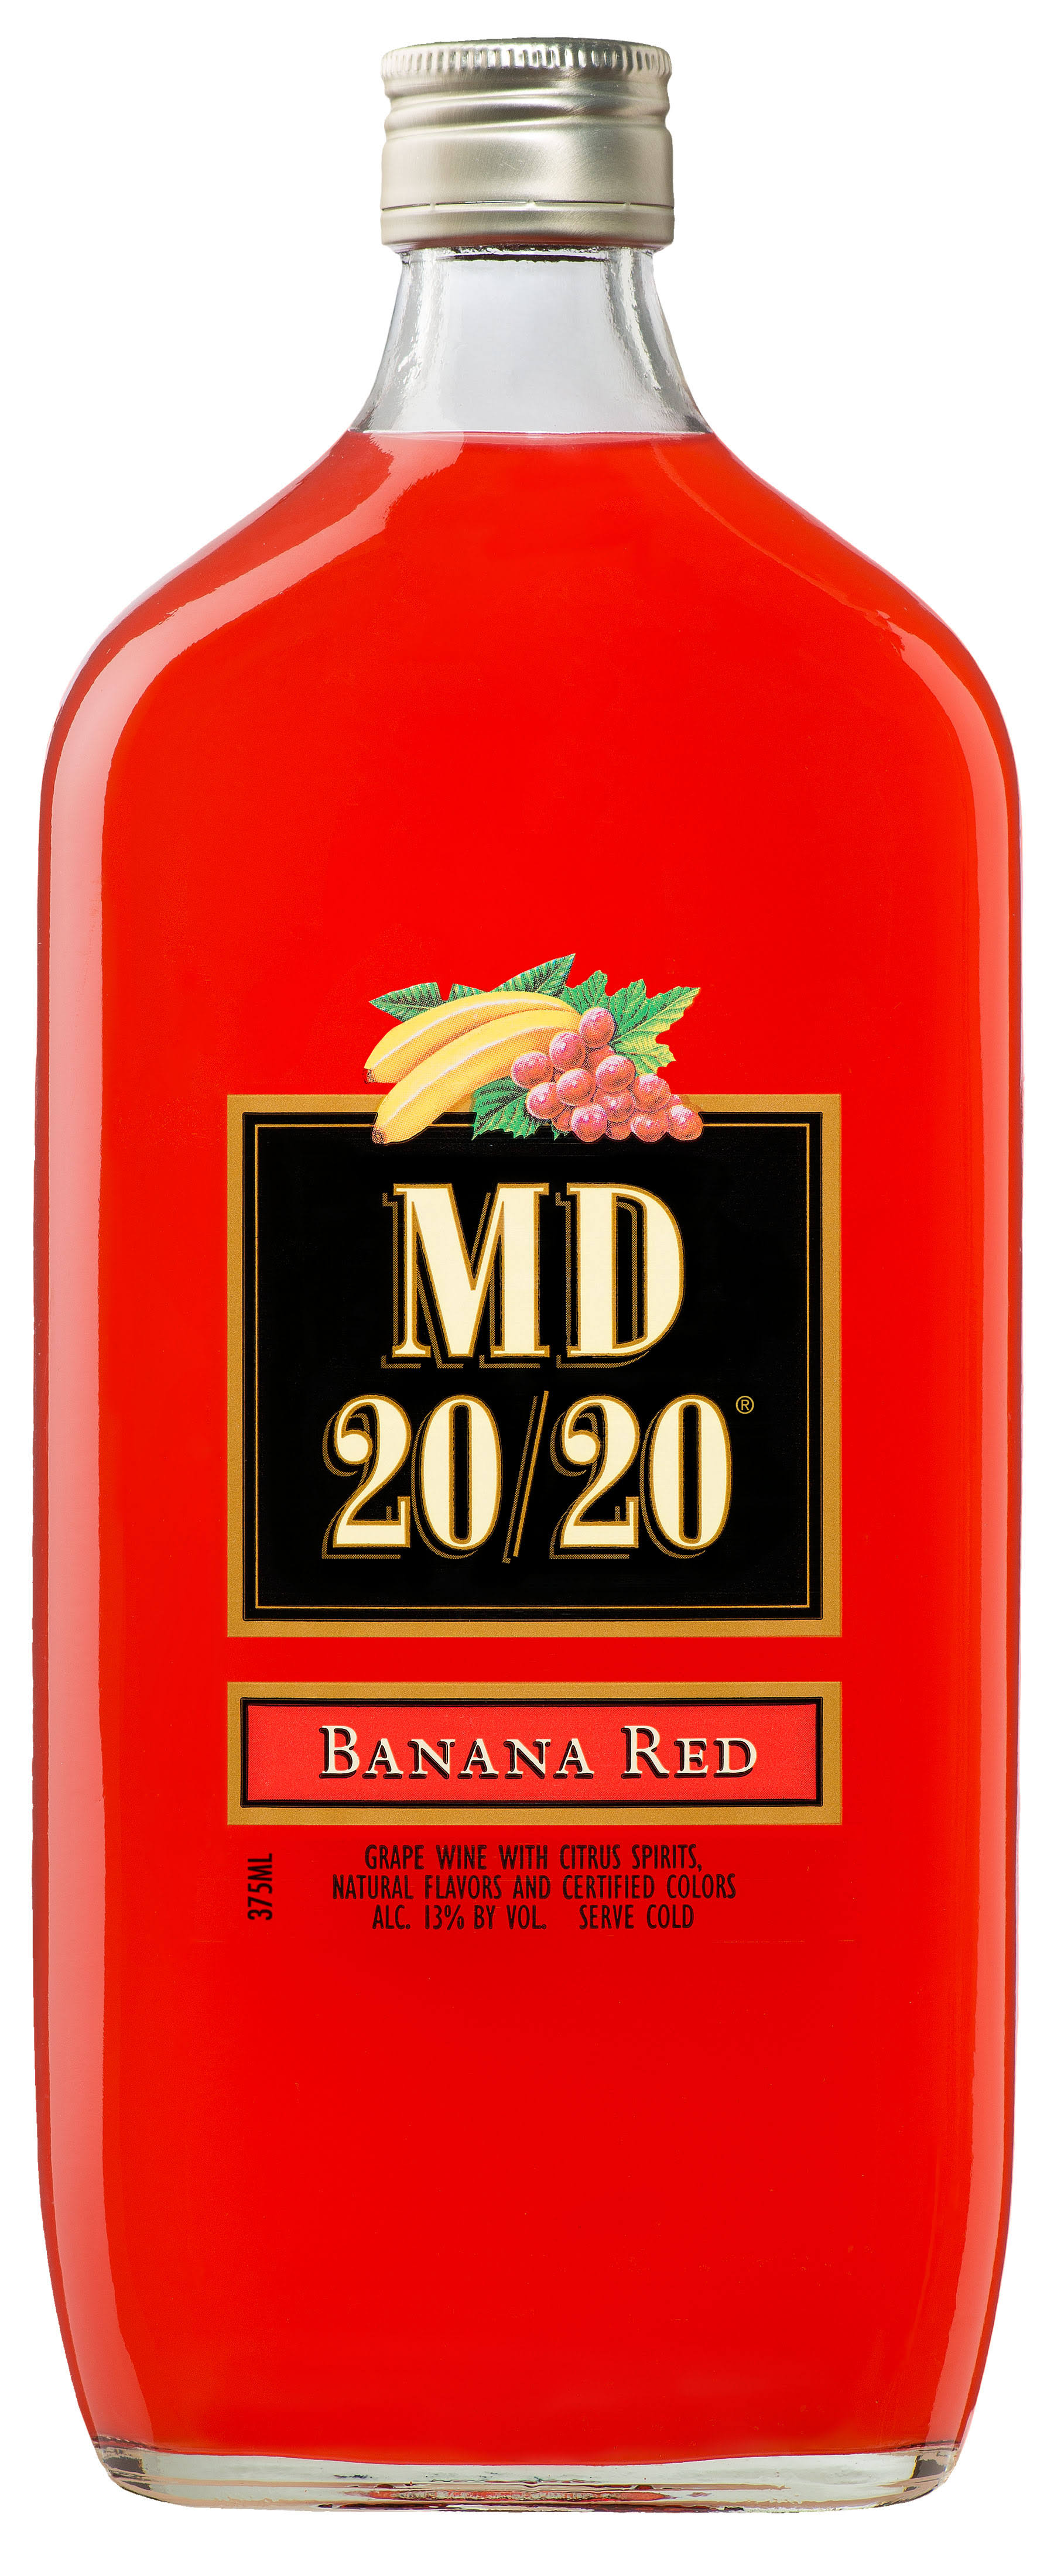 MD 20/20 Banana Red Flavored Wine - 375ml